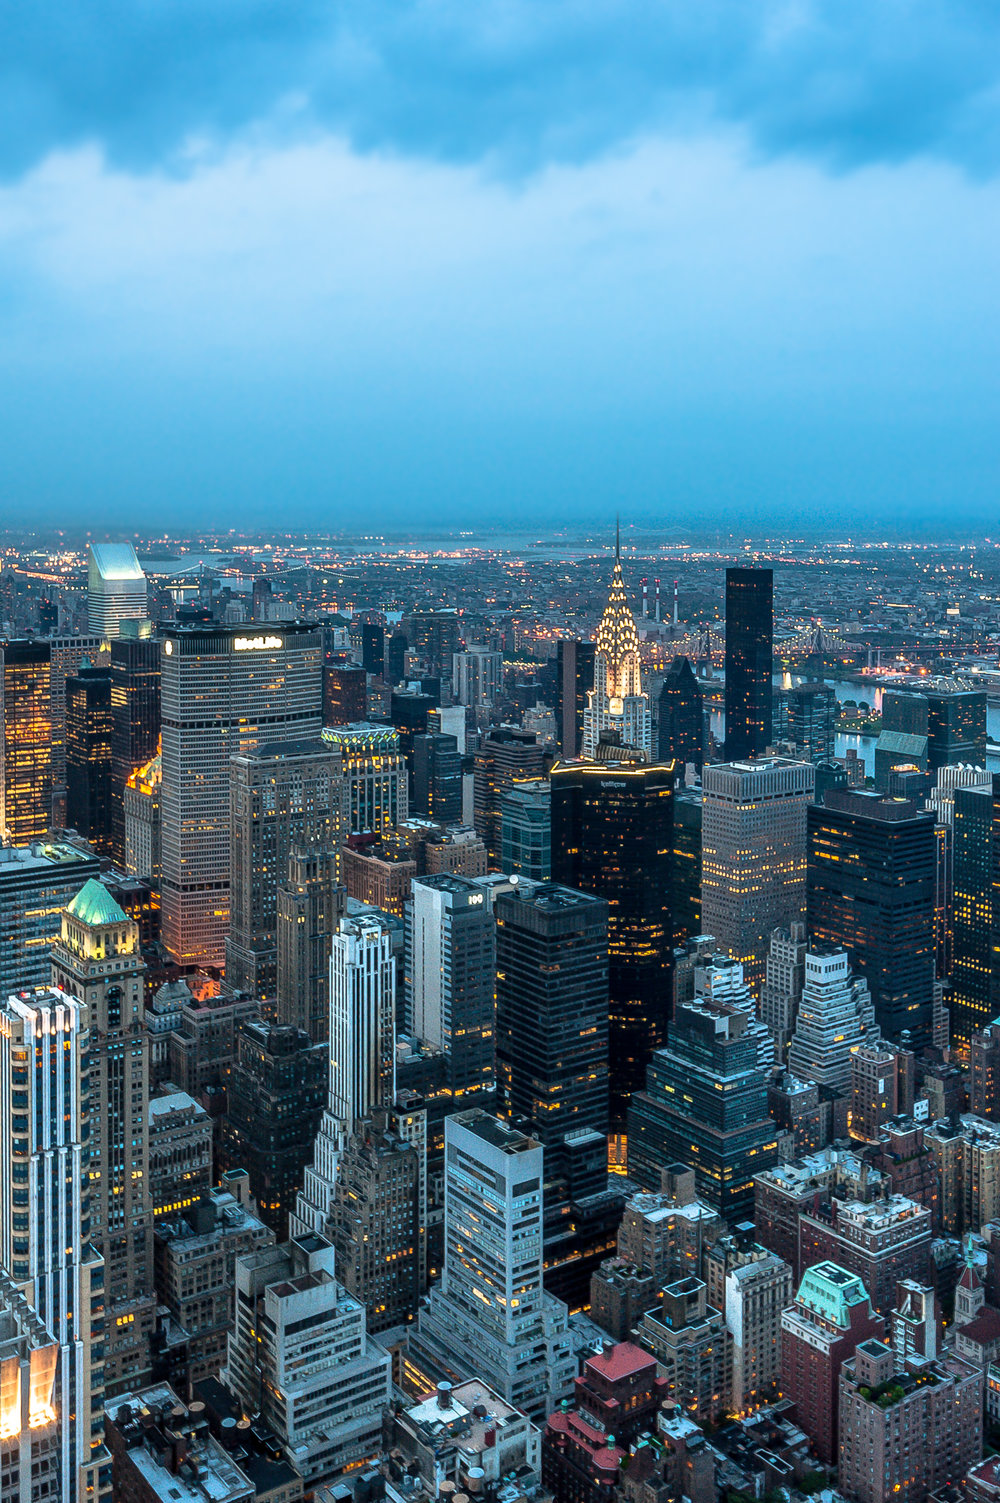 New York Midtown (click the image to view full size)